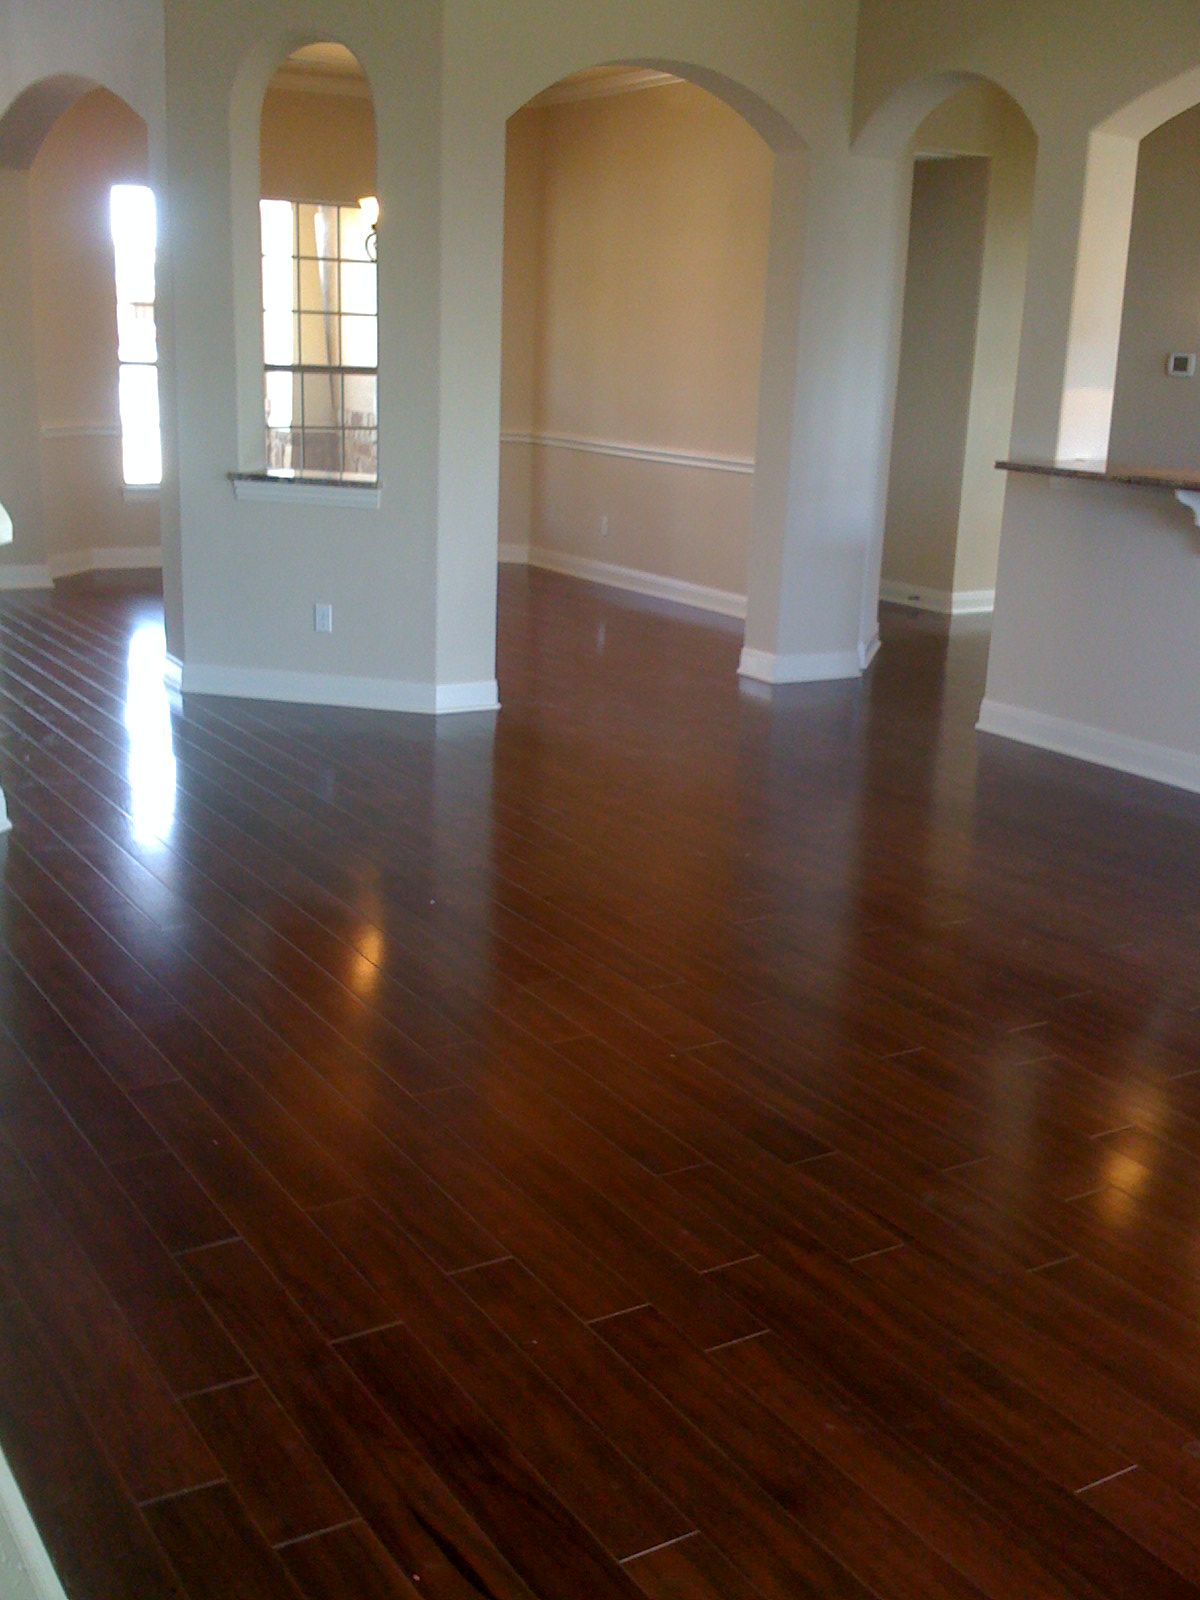 Dark Wood Floors But All I Can Think Of Is How Much Fun